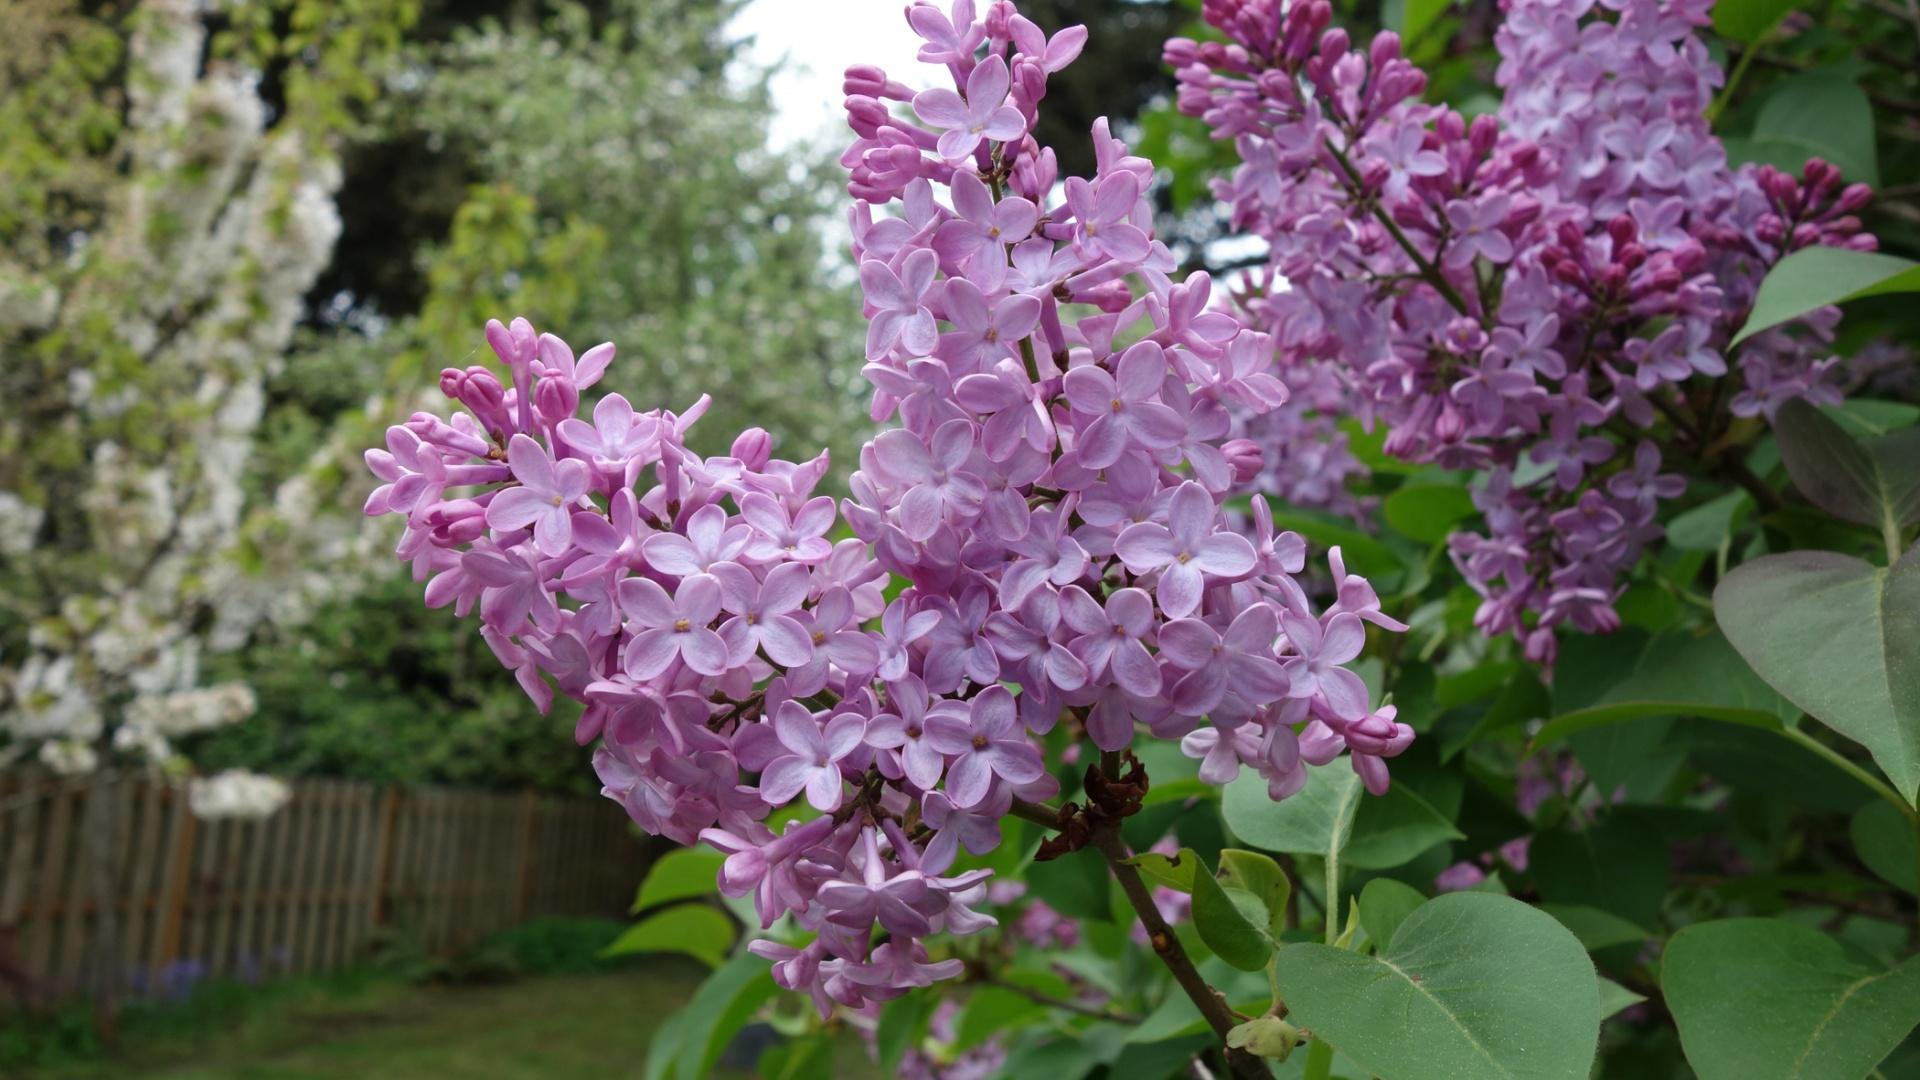 Lilacs Are Just As Stubborn As They Are Beautiful, But Melinda Myersu0027 Tip  Will Help Keep Lilacs Under Control.